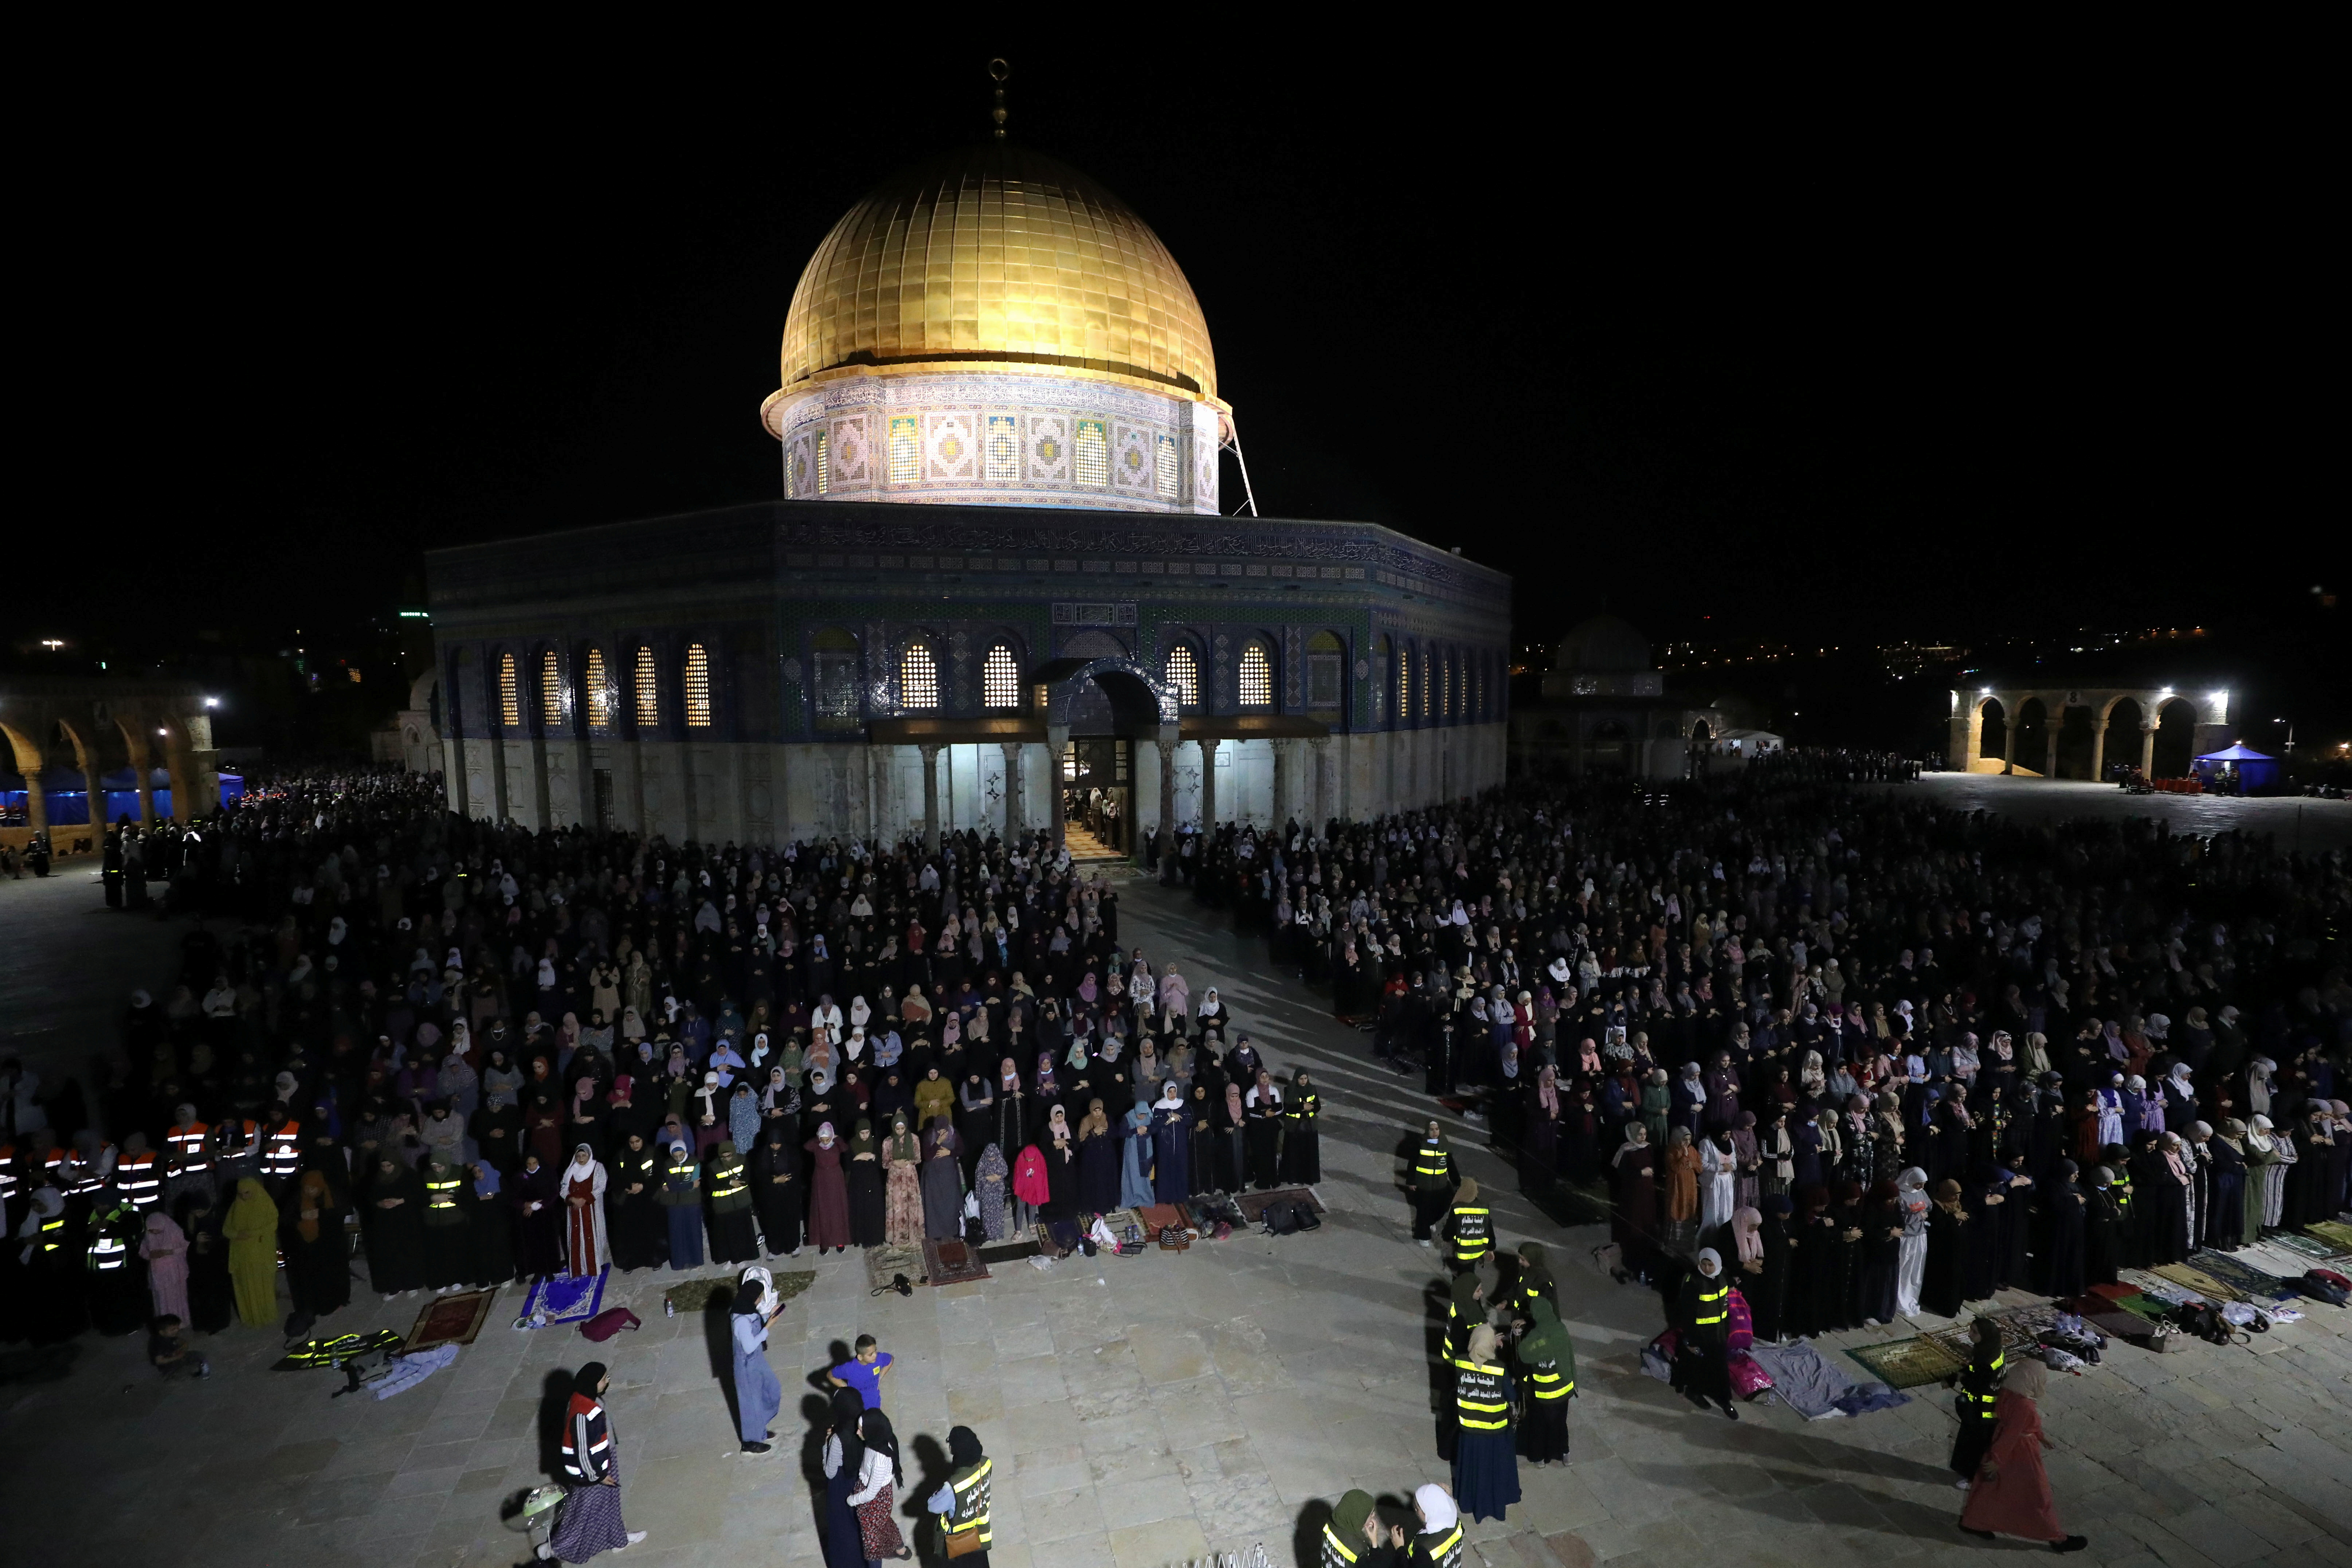 Palestinians pray in front of the Dome of the Rock on Laylat al-Qadr during the holy month of Ramadan, at the compound that houses Al-Aqsa Mosque, known to Muslims as Noble Sanctuary and to Jews as Temple Mount, in Jerusalem's Old City, May 8, 2021. REUTERS/Ammar Awad